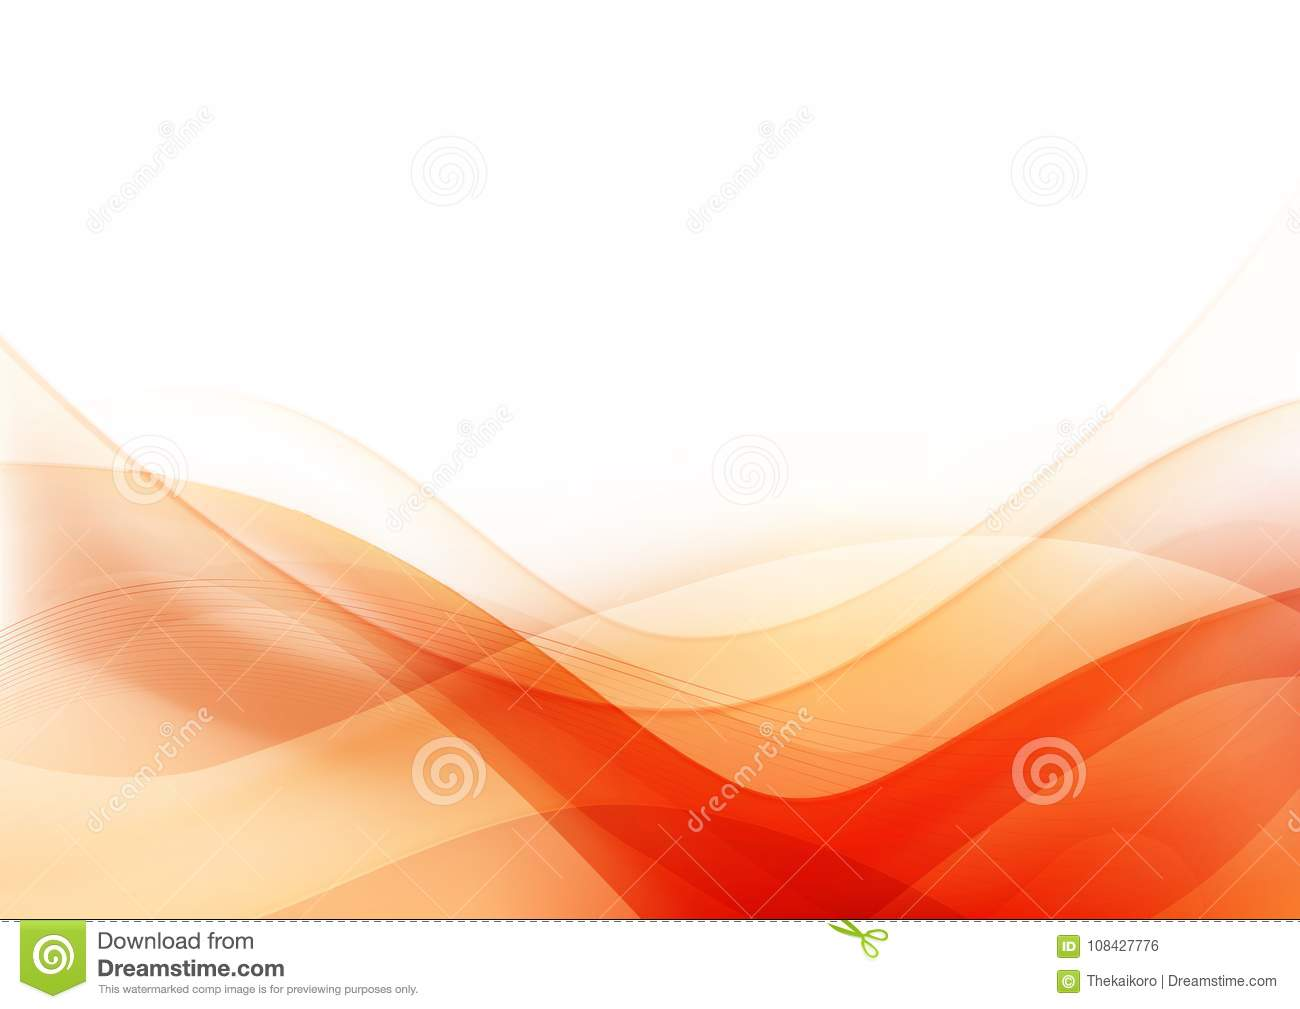 Curve and blend light Orange abstract background 003